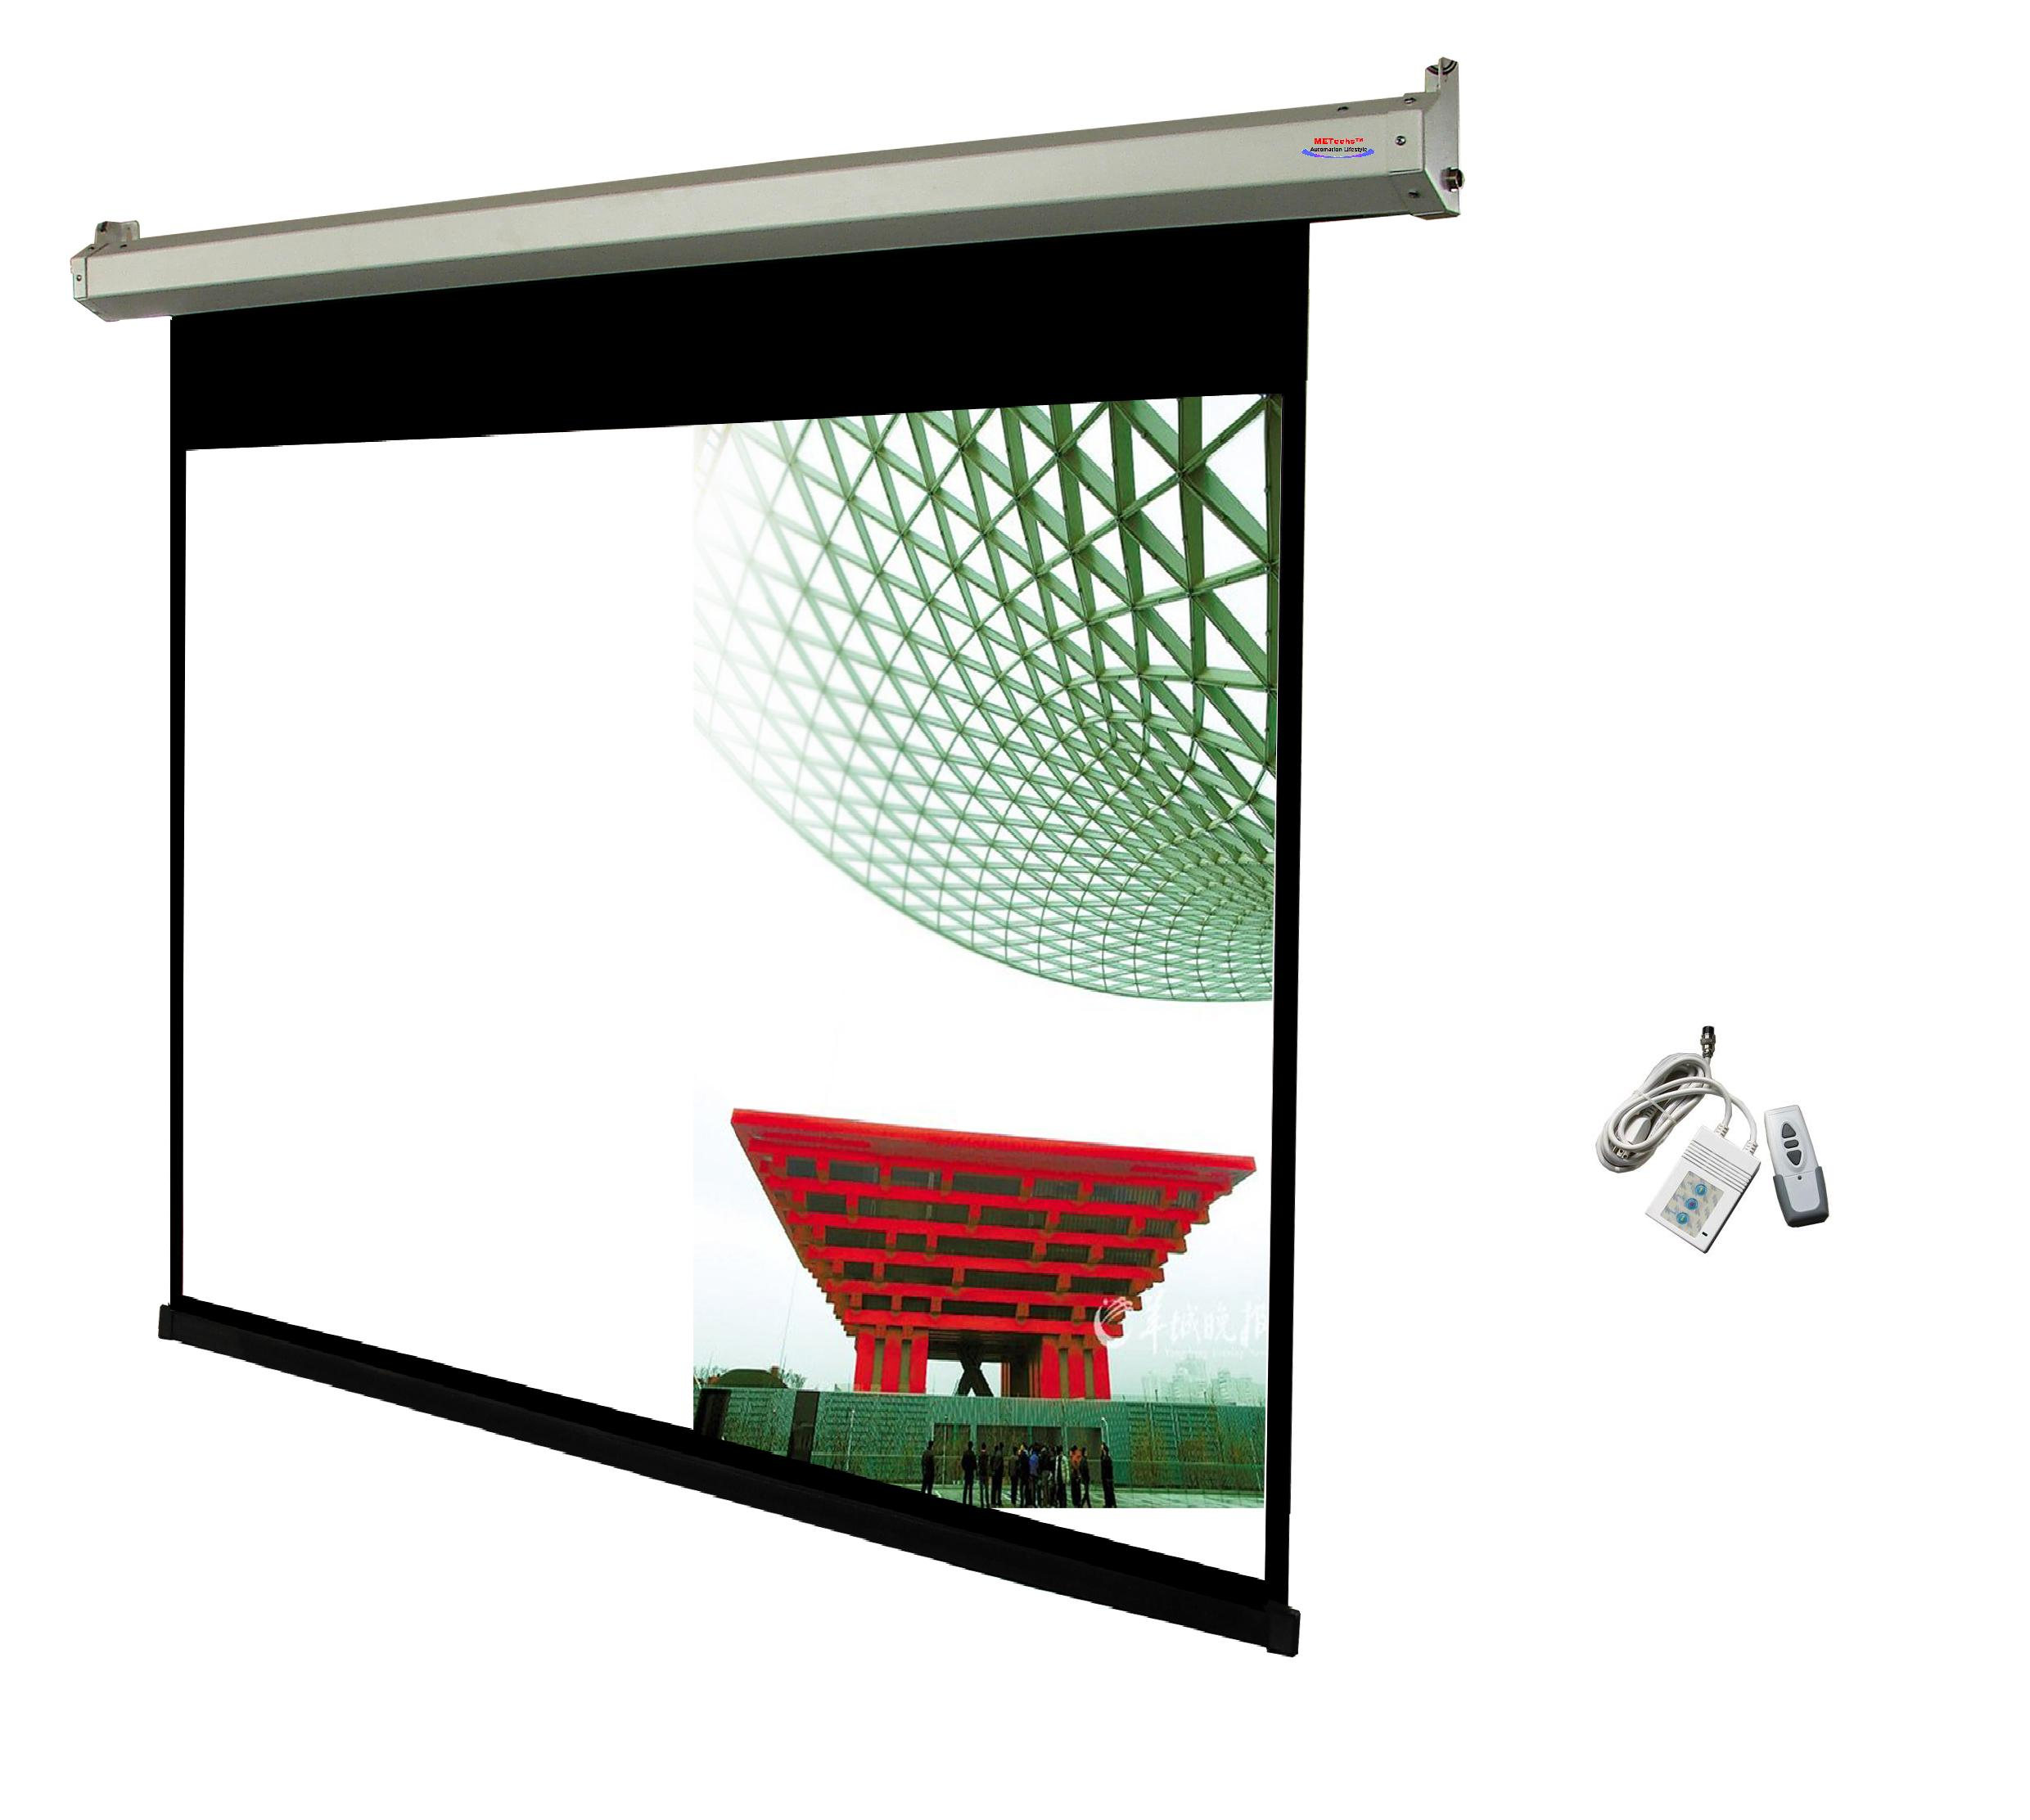 100 4 3 motorized electric projector screen me43e 100w for Motorized drop down projector screen